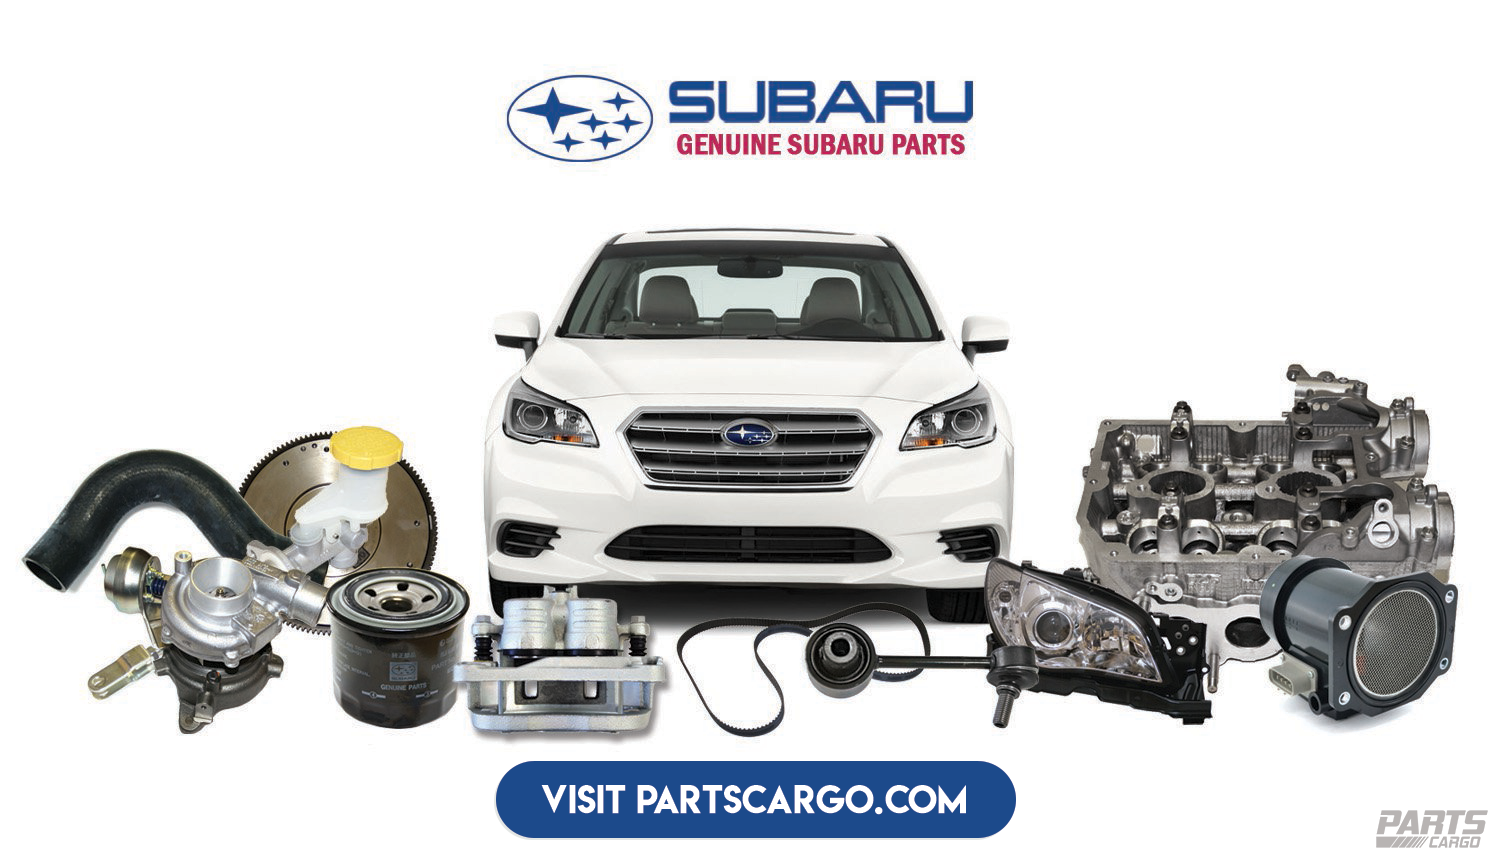 Partscargo Is The Best Affordable Online Auto Parts Store In The Usa Subaru Online Auto Parts Store Cars For Sale